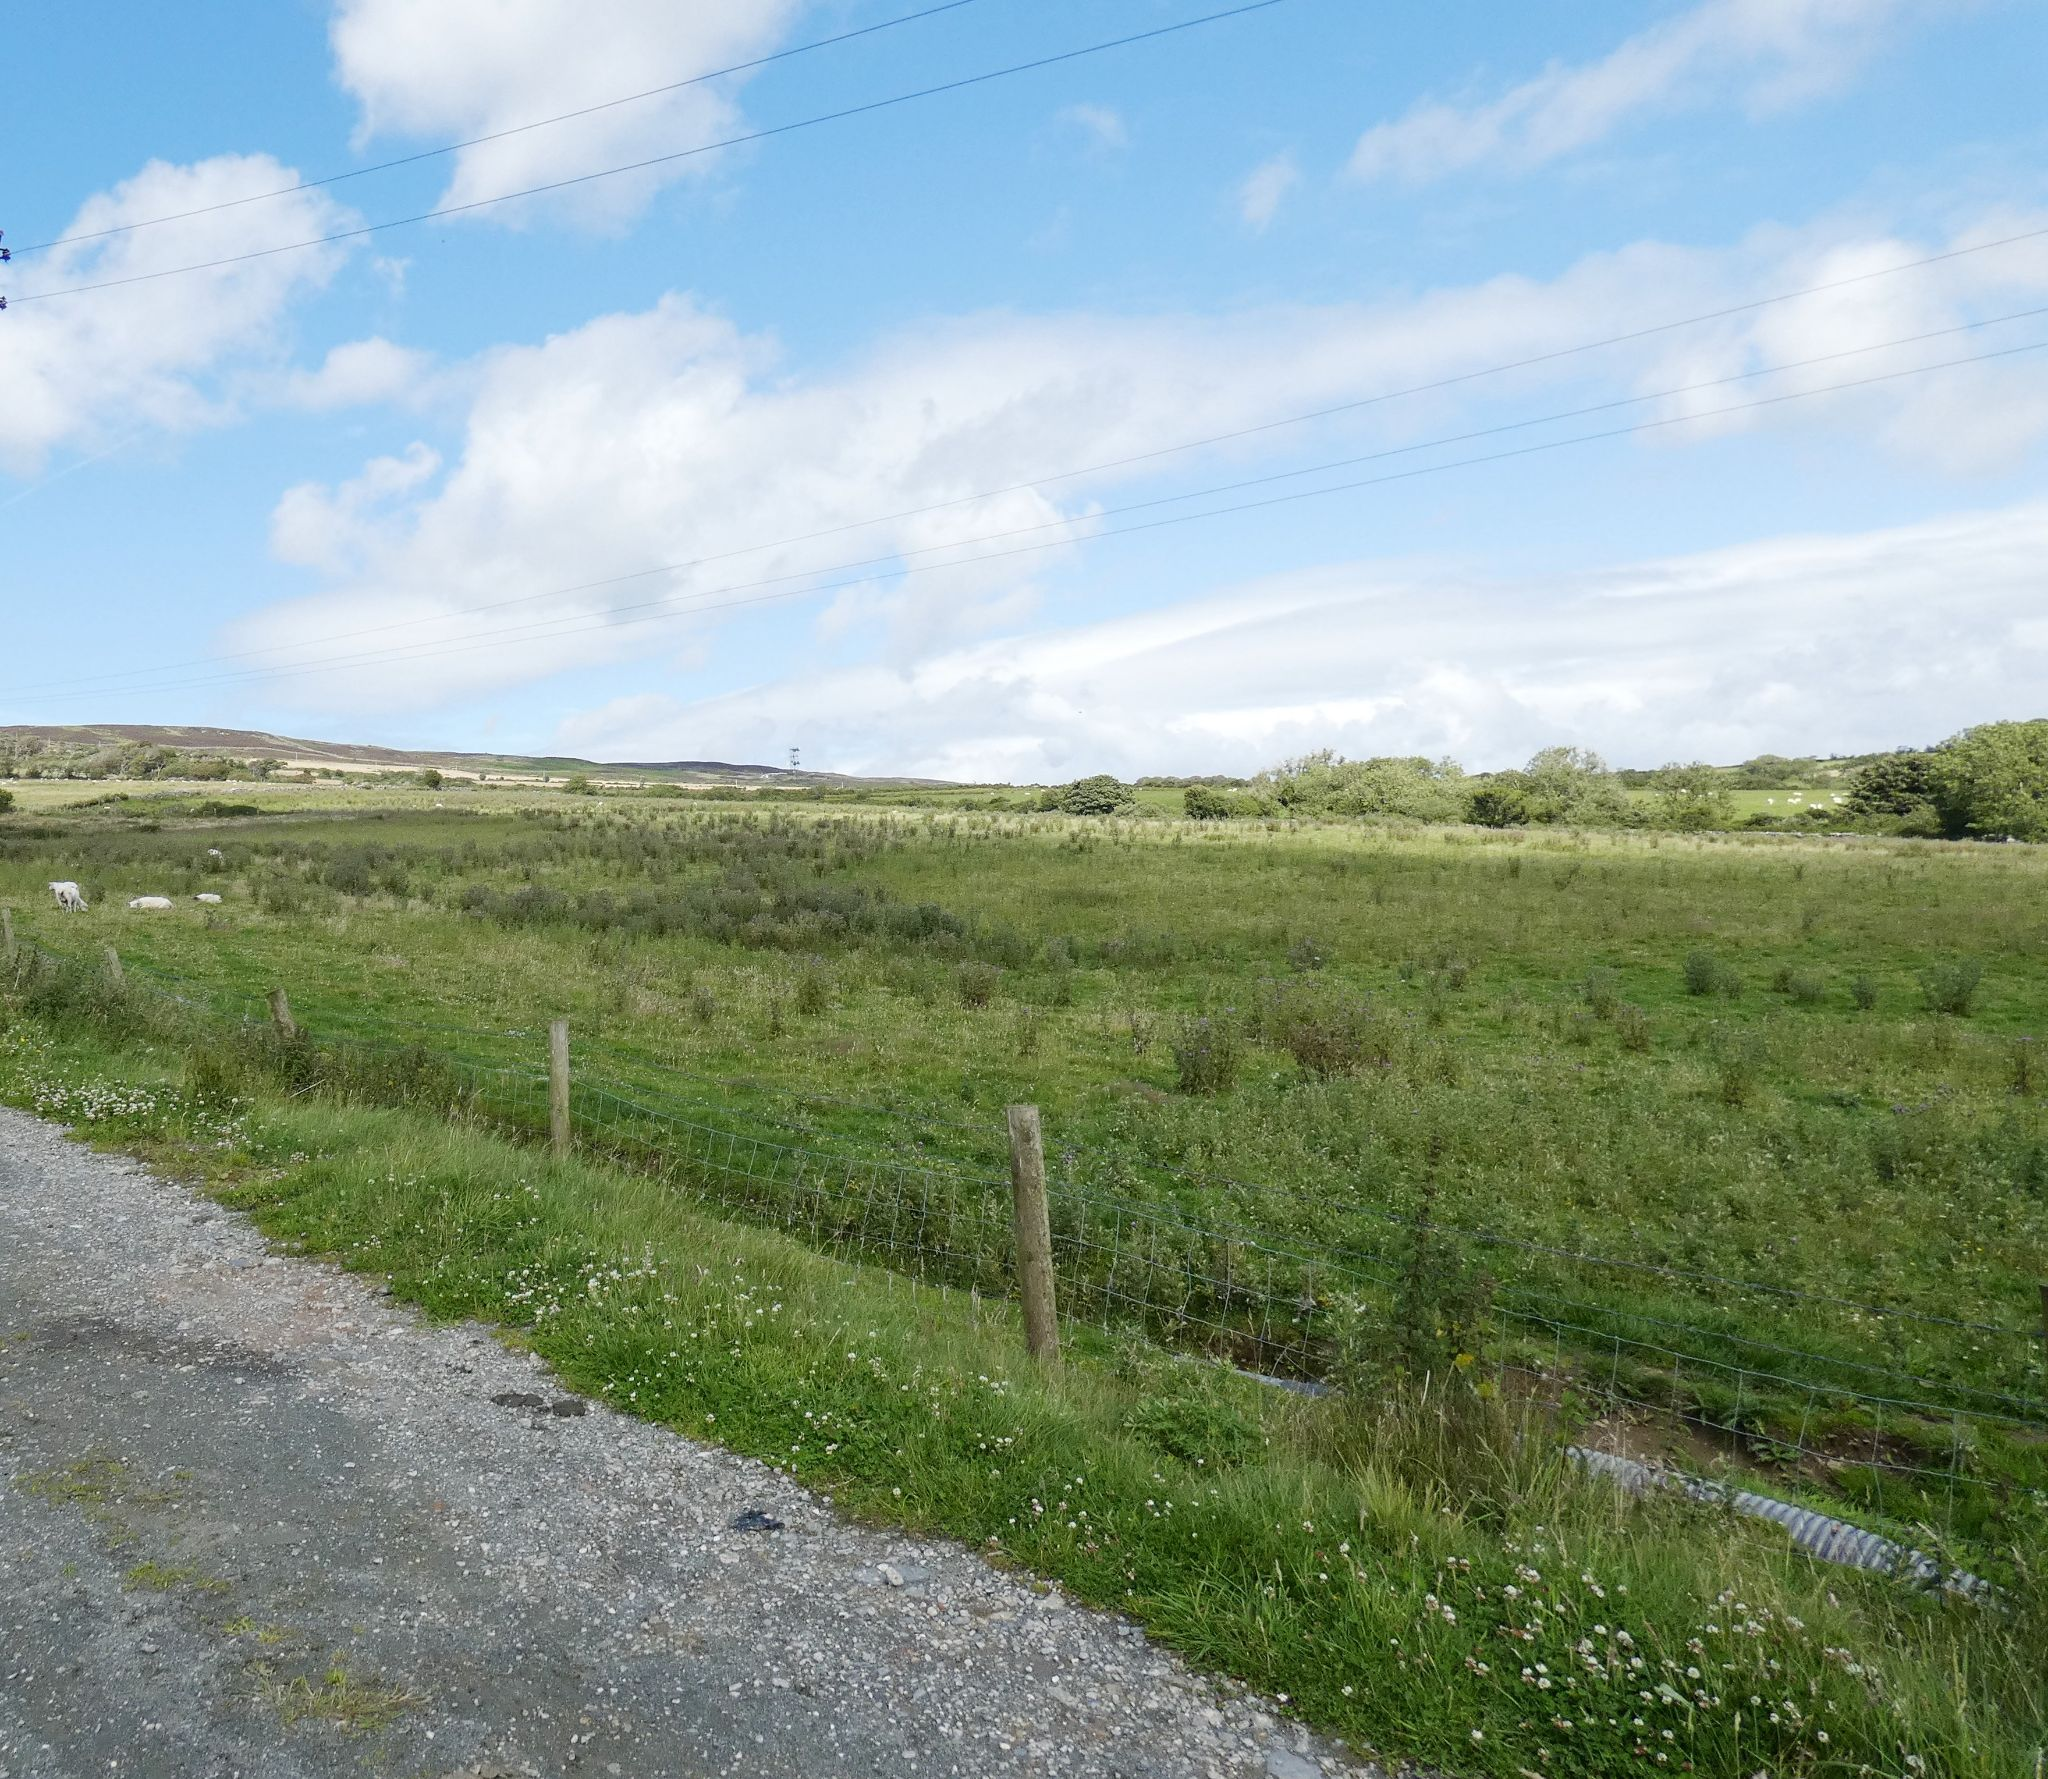 Farm Land Land For Sale in Abbeylands, Onchan - Photograph 1